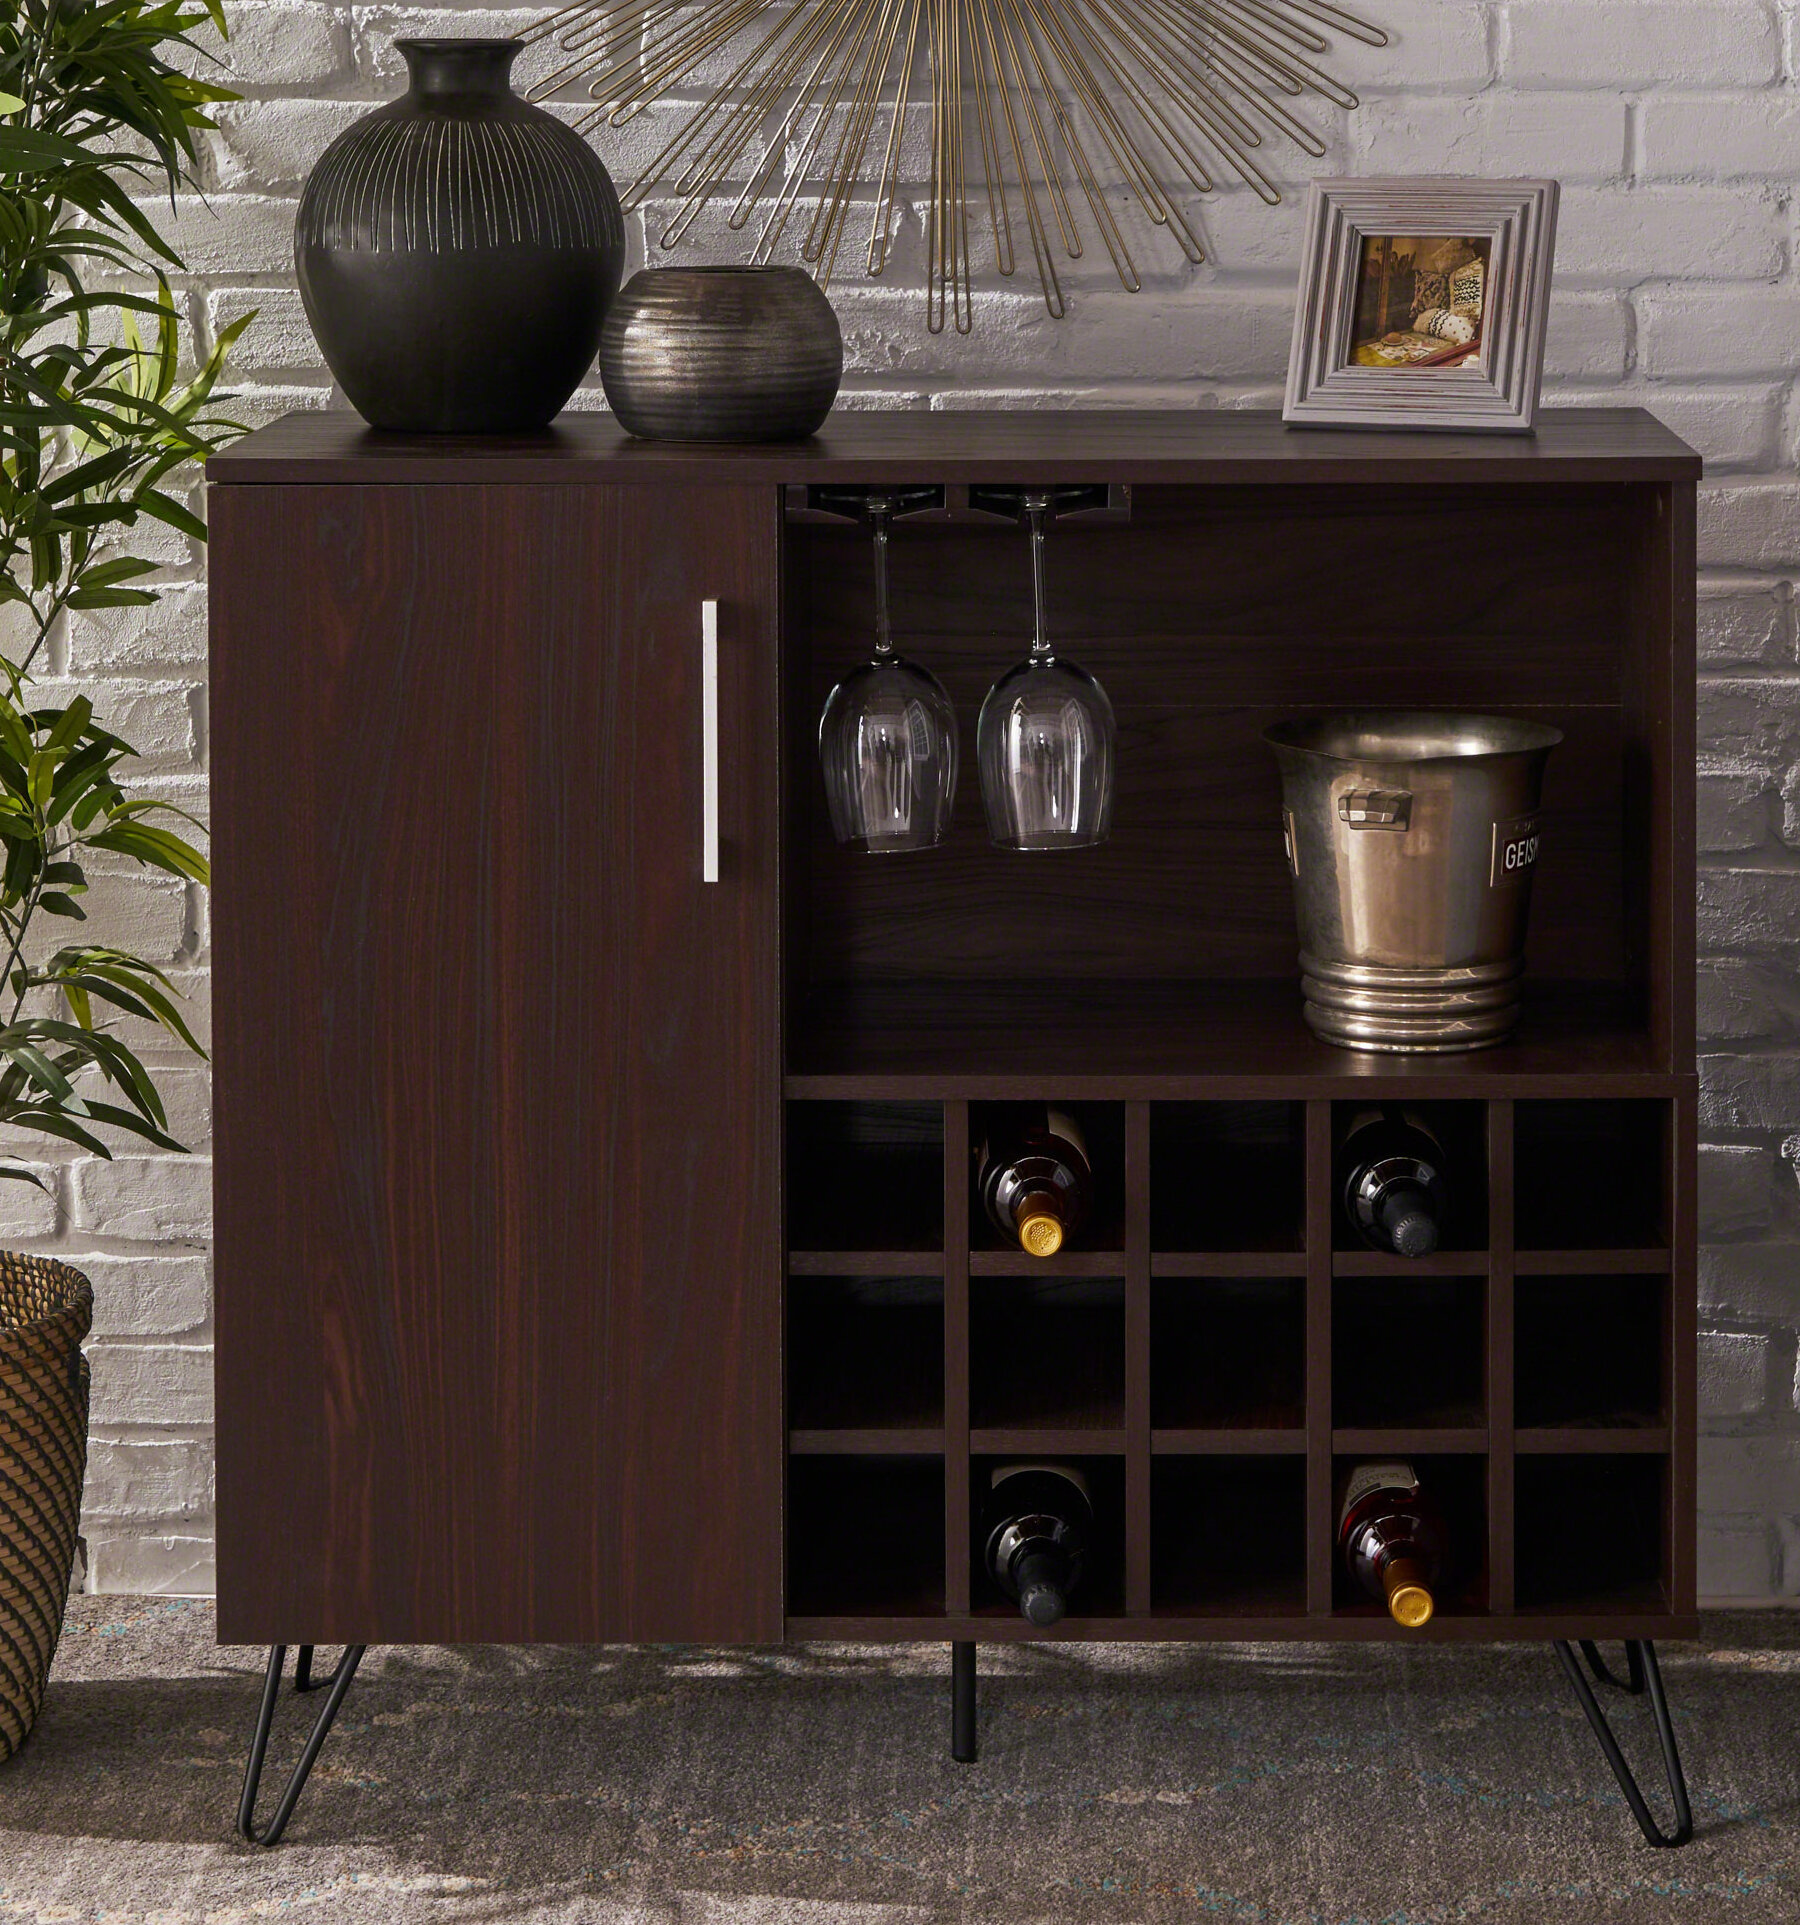 f by storage cabinet pieces img modern l circa furniture at cabinets rway china id case century bar mid teak